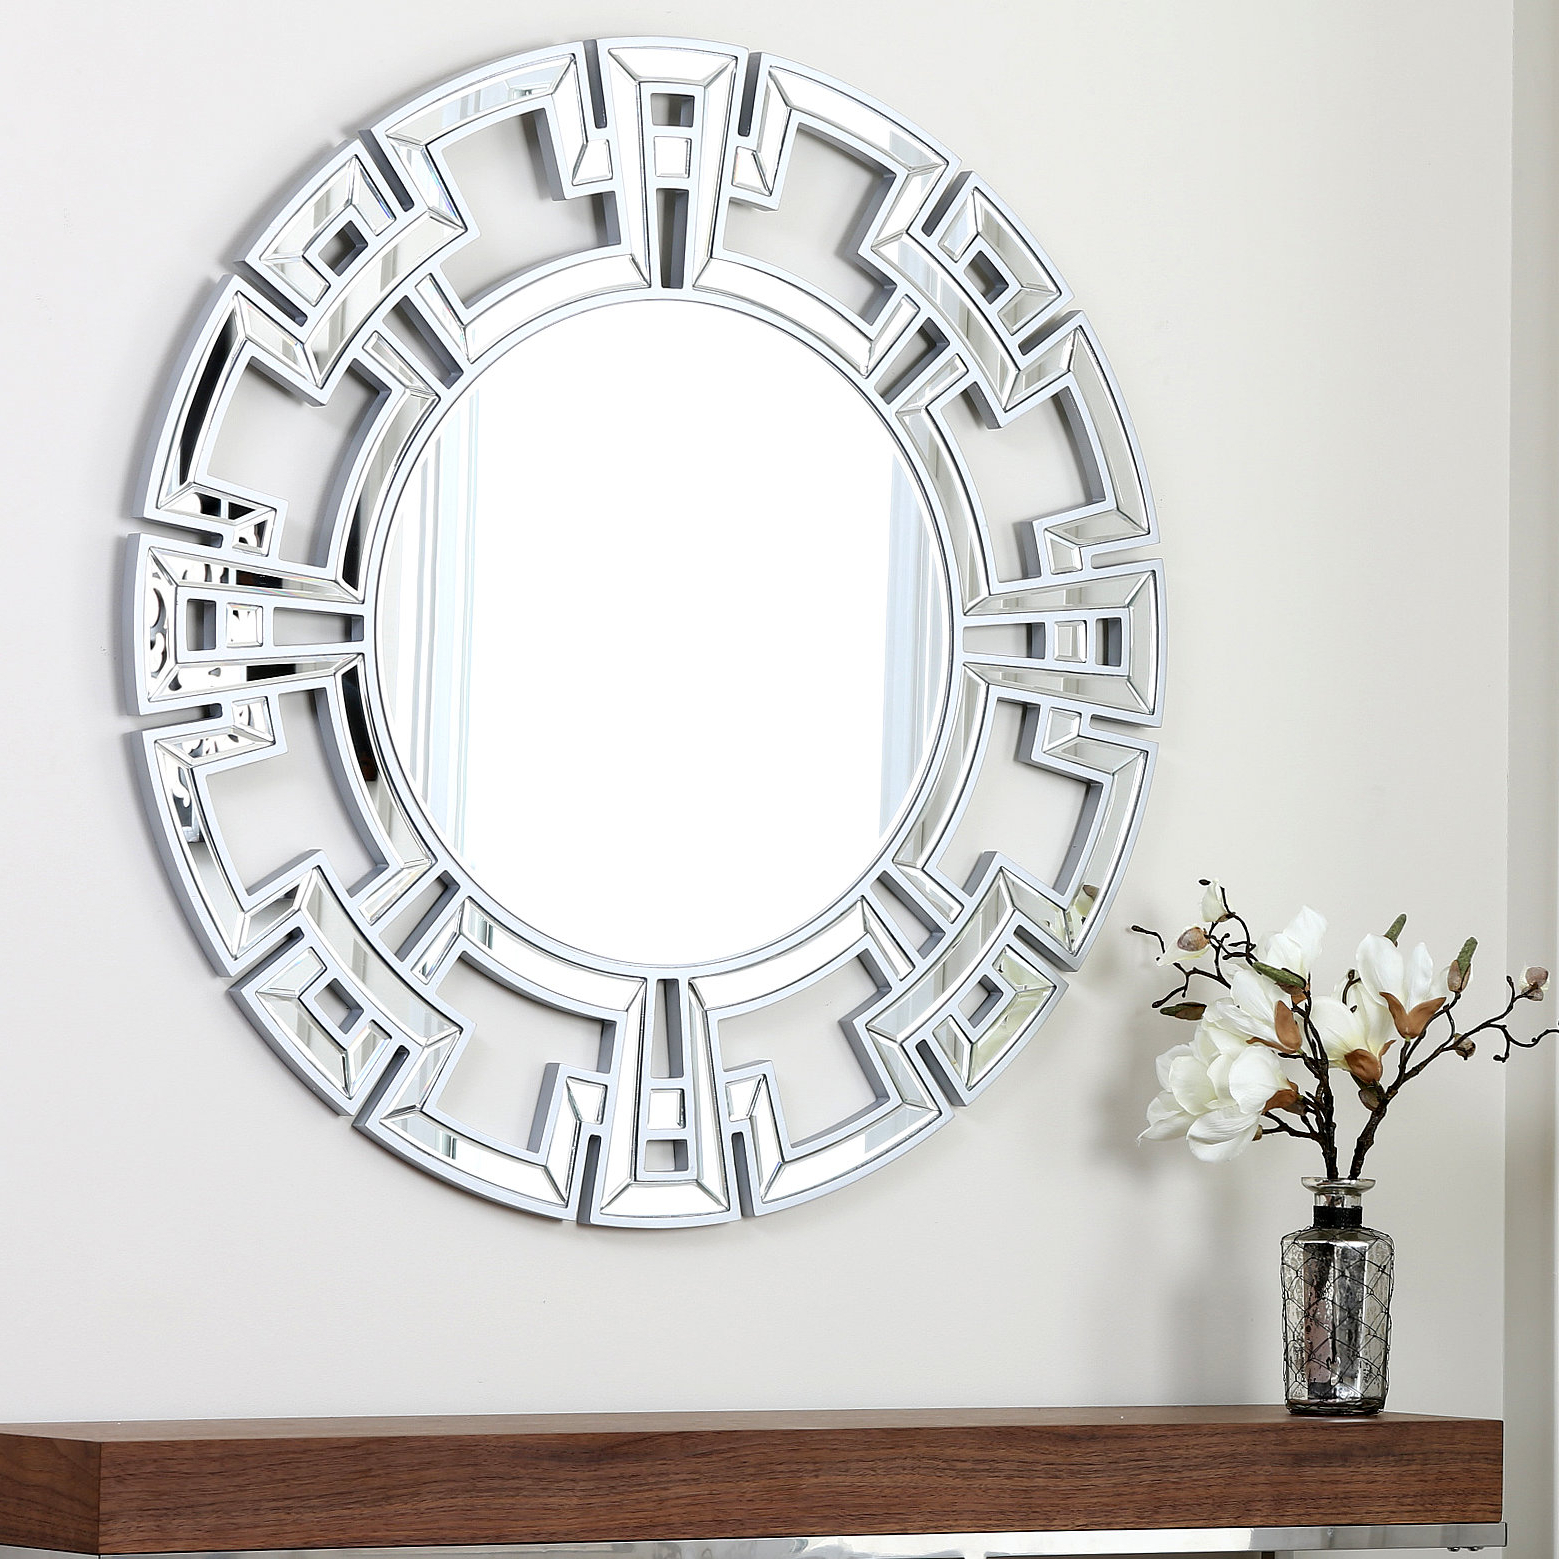 Most Current Tata Openwork Round Wall Mirrors Inside Willa Arlo Interiors Tata Openwork Round Wall Mirror (View 9 of 20)